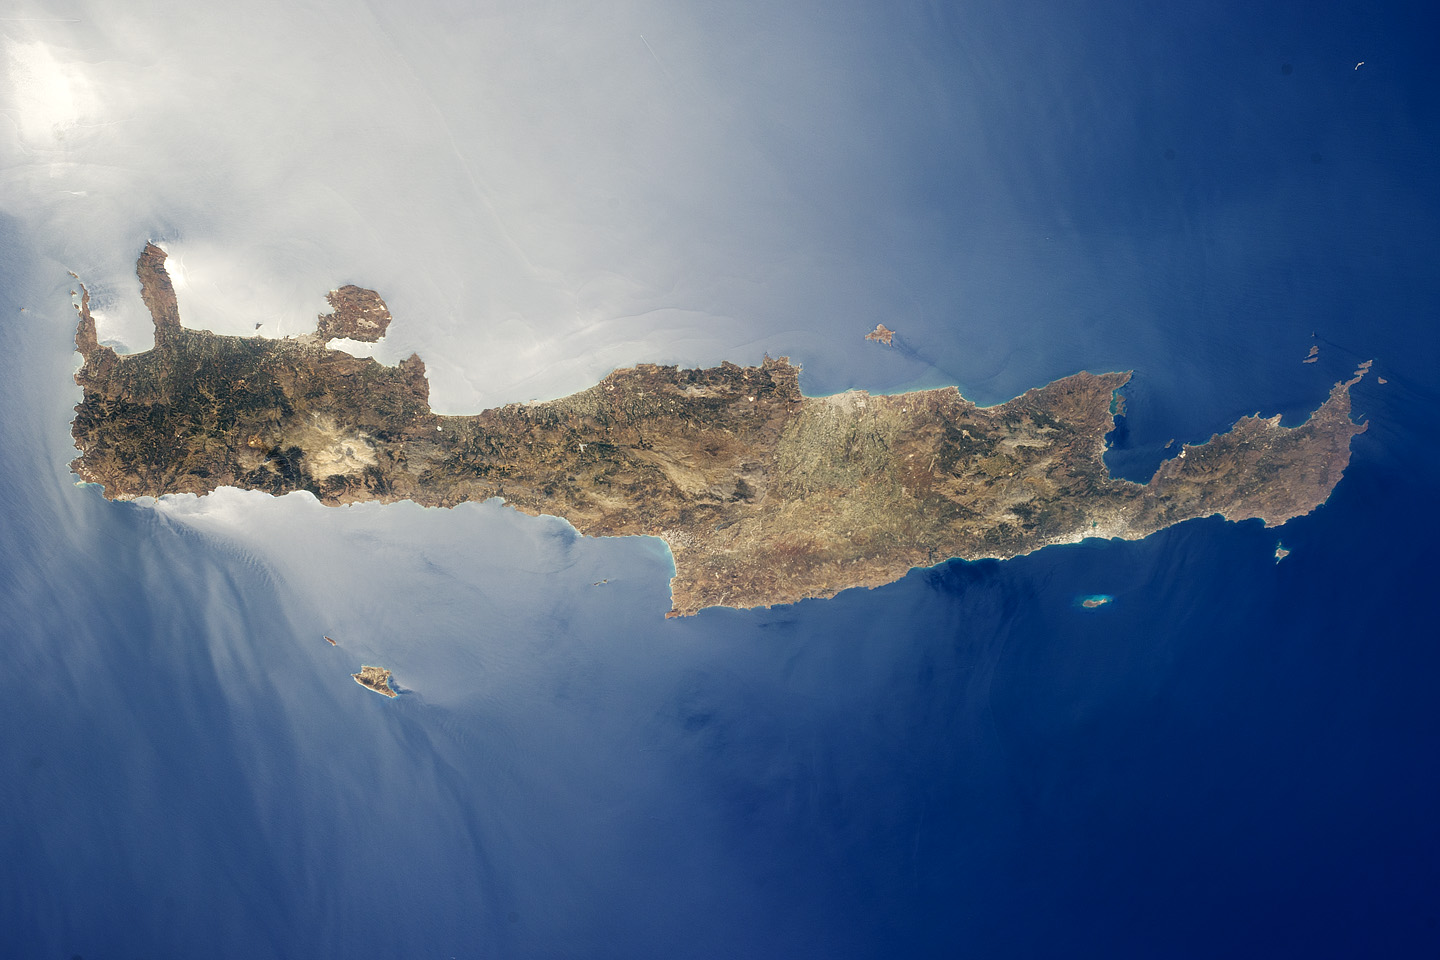 Re: Watching Crete from space - live!